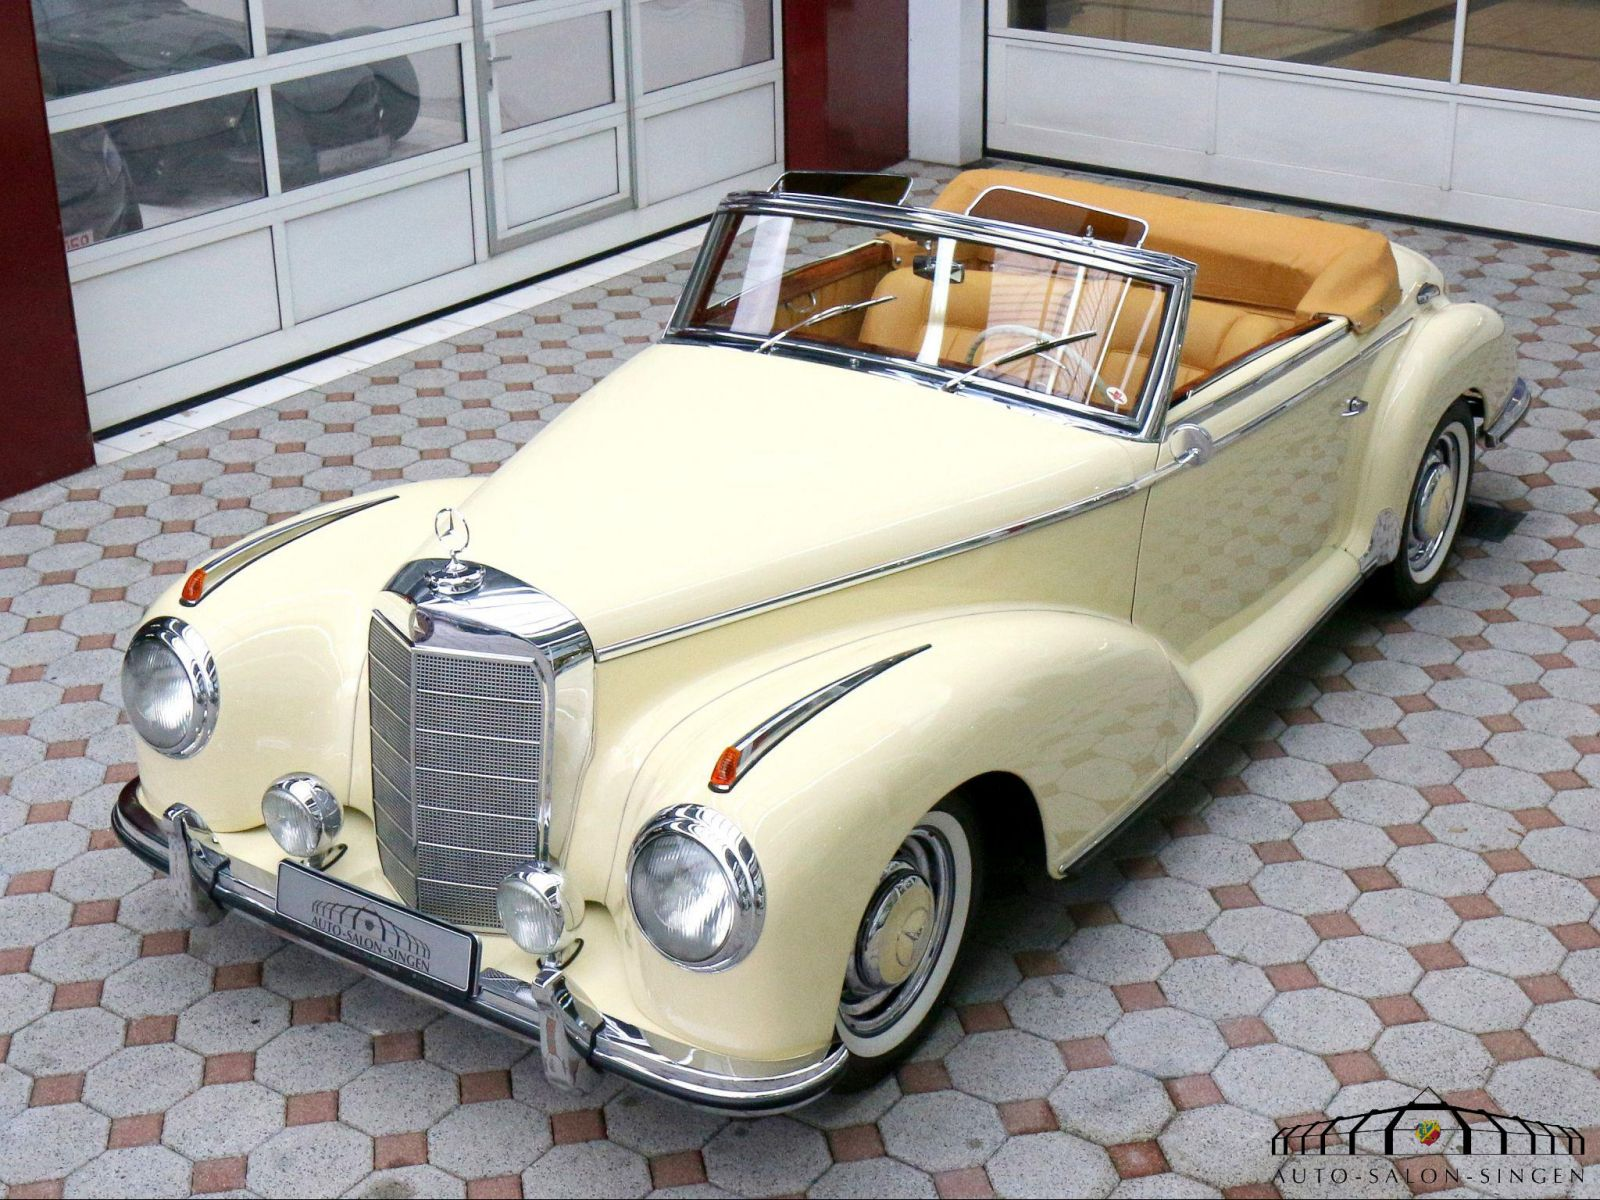 Mercedes benz 300 s roadster roadster auto salon singen for Mercedes benz 300 s